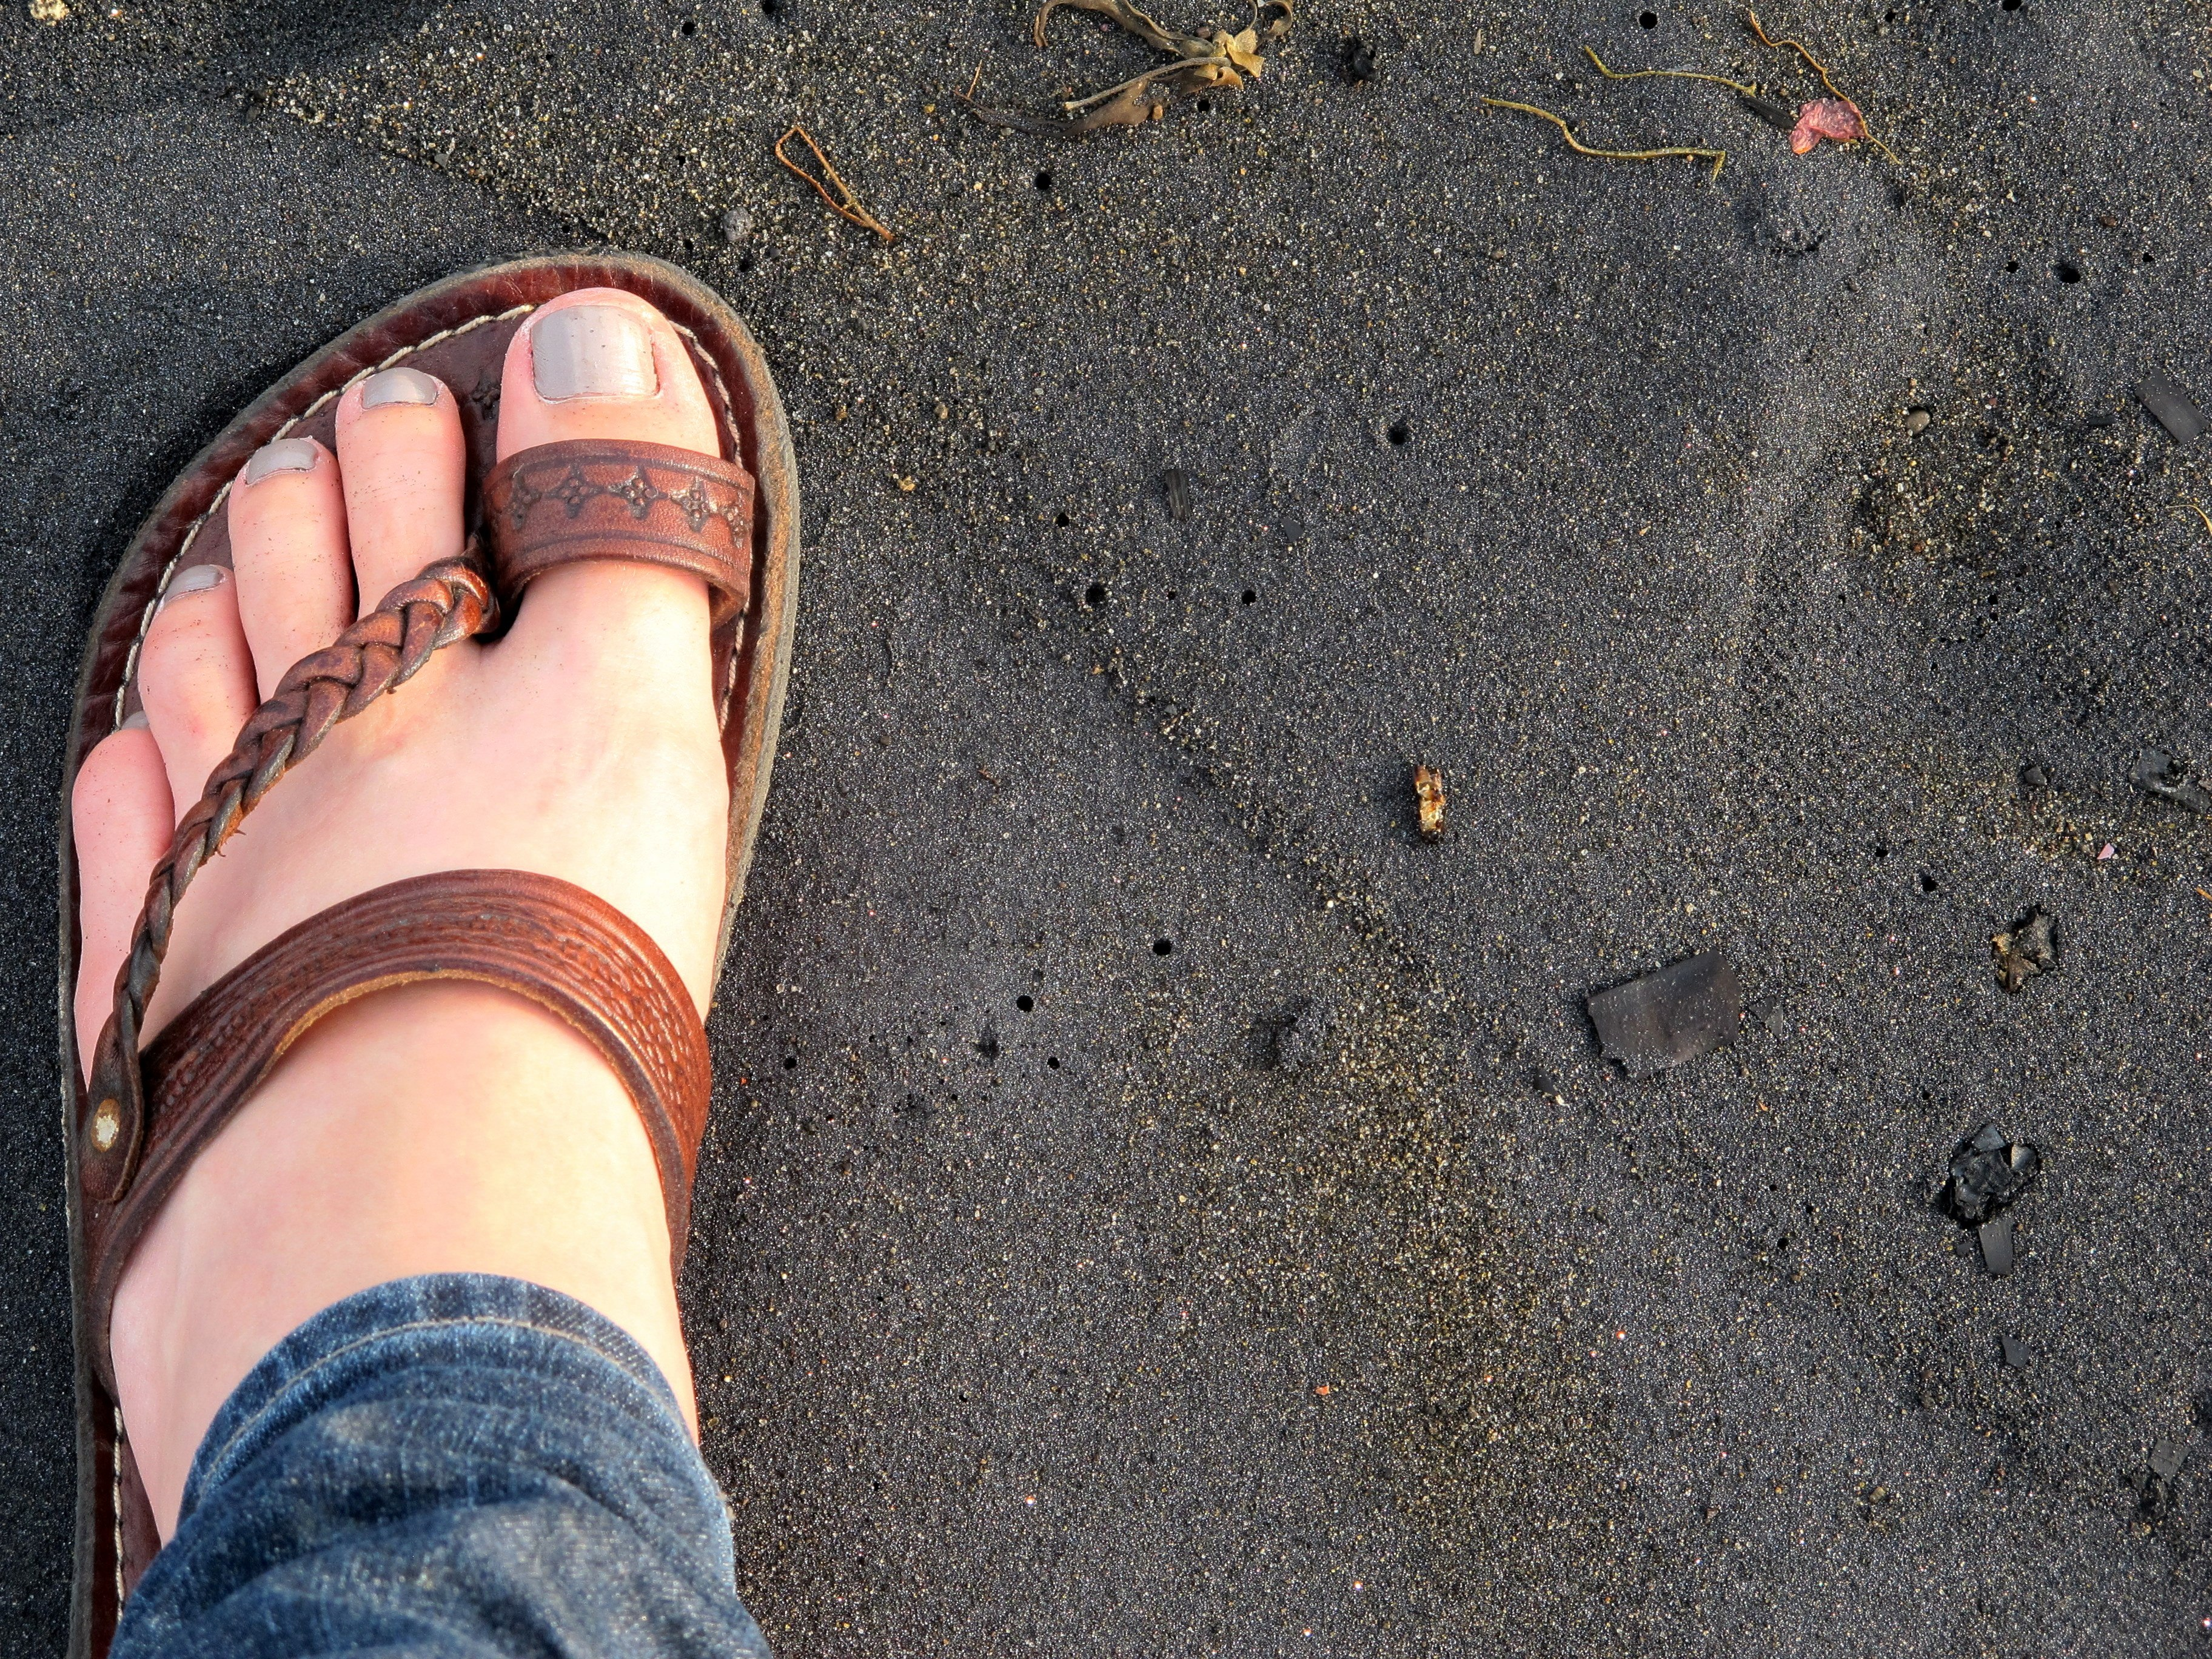 Camel leather sandals from Morocco, Africa